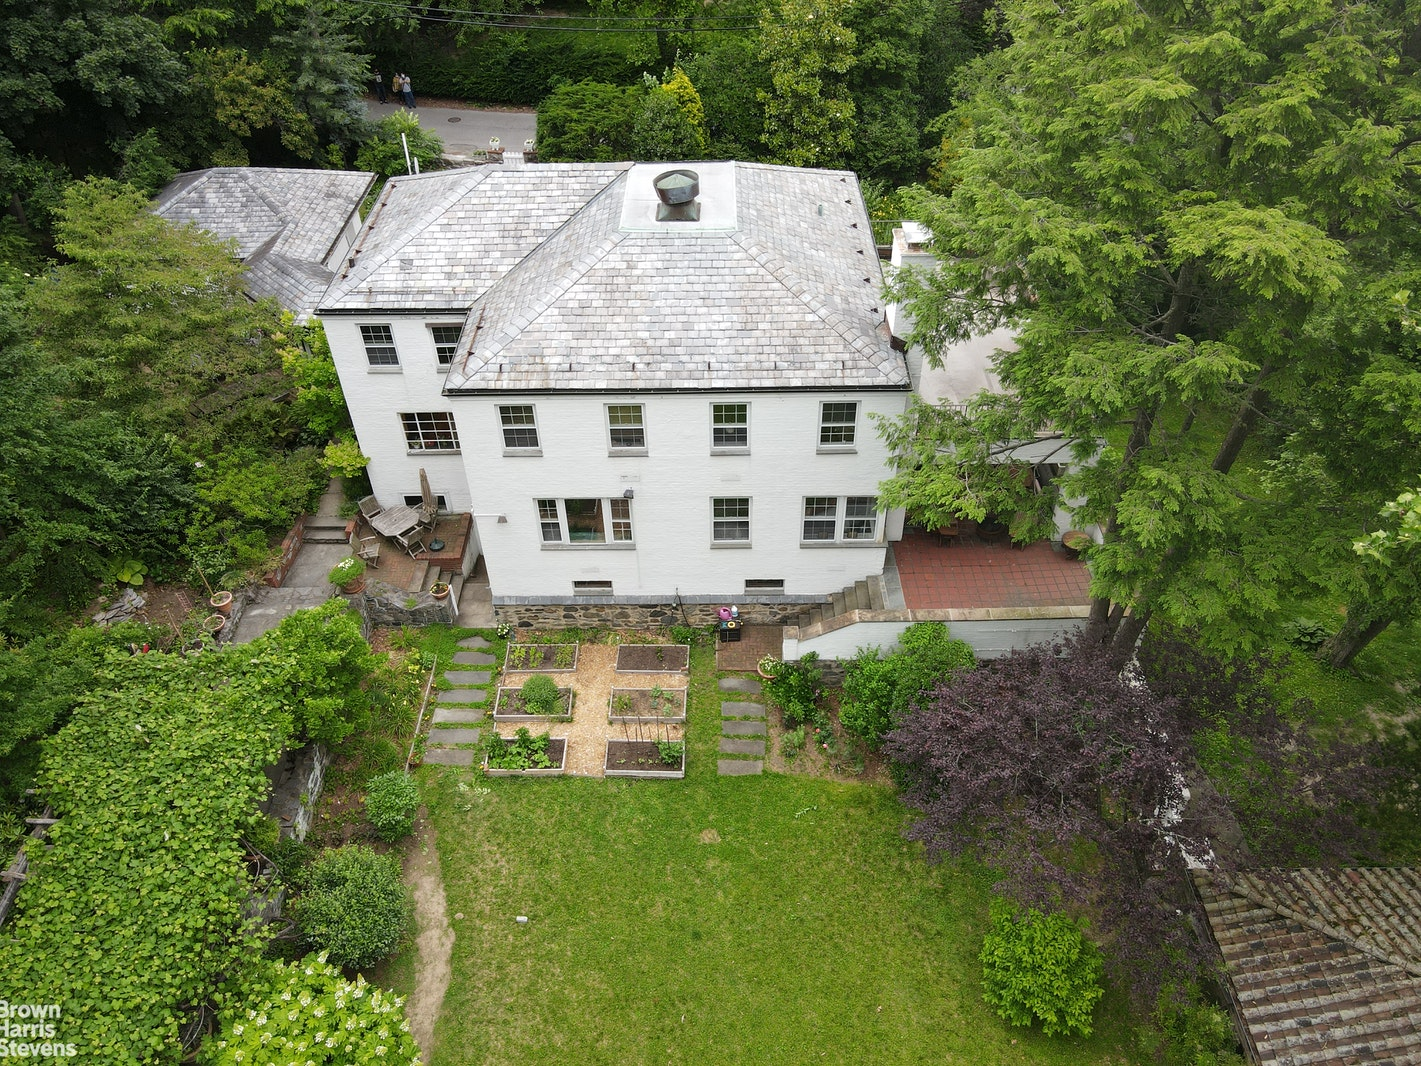 600 -4821 West 249th Stre, Riverdale, New York, 10471, $3,500,000, Property For Sale, Halstead Real Estate, Photo 20